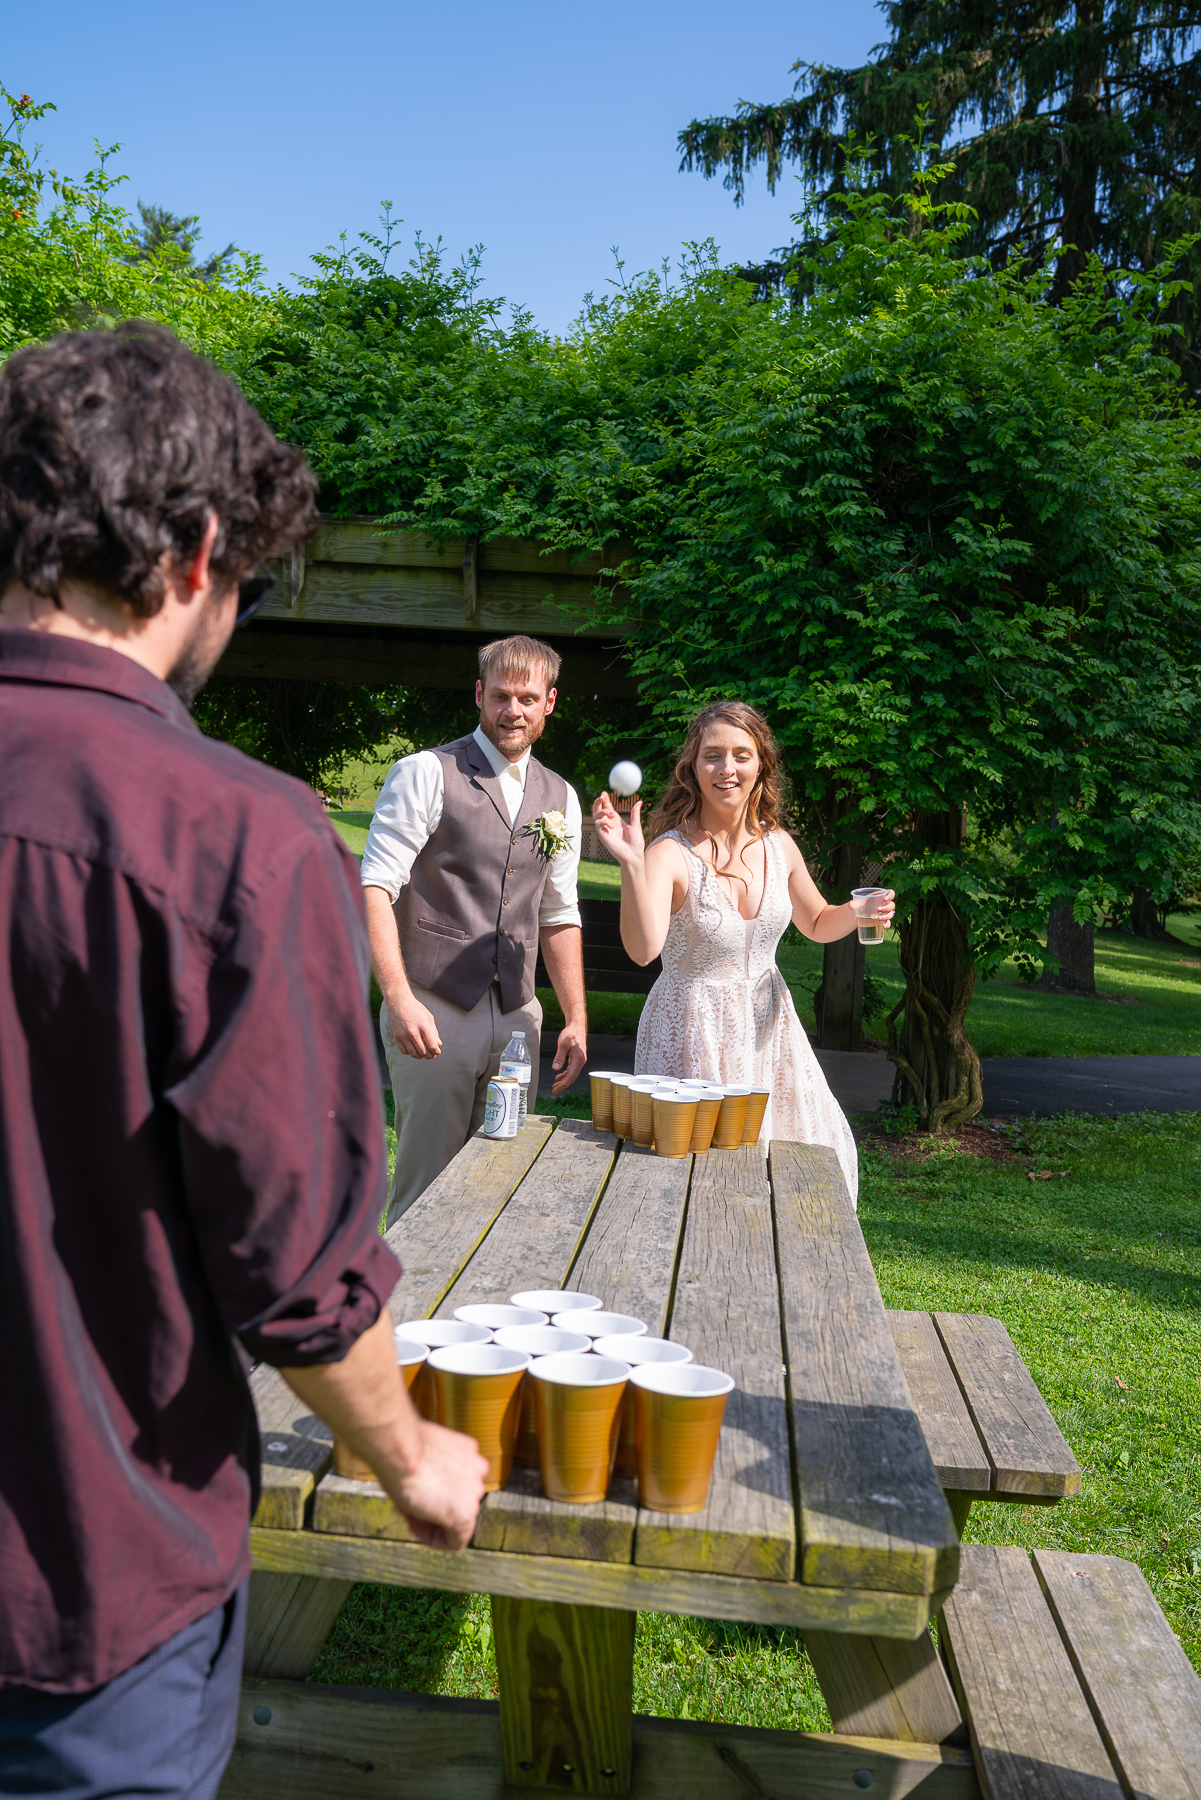 The Newlyweds partaking in the outdoor games during Cocktail Hour…yes, that's Beer Pong!